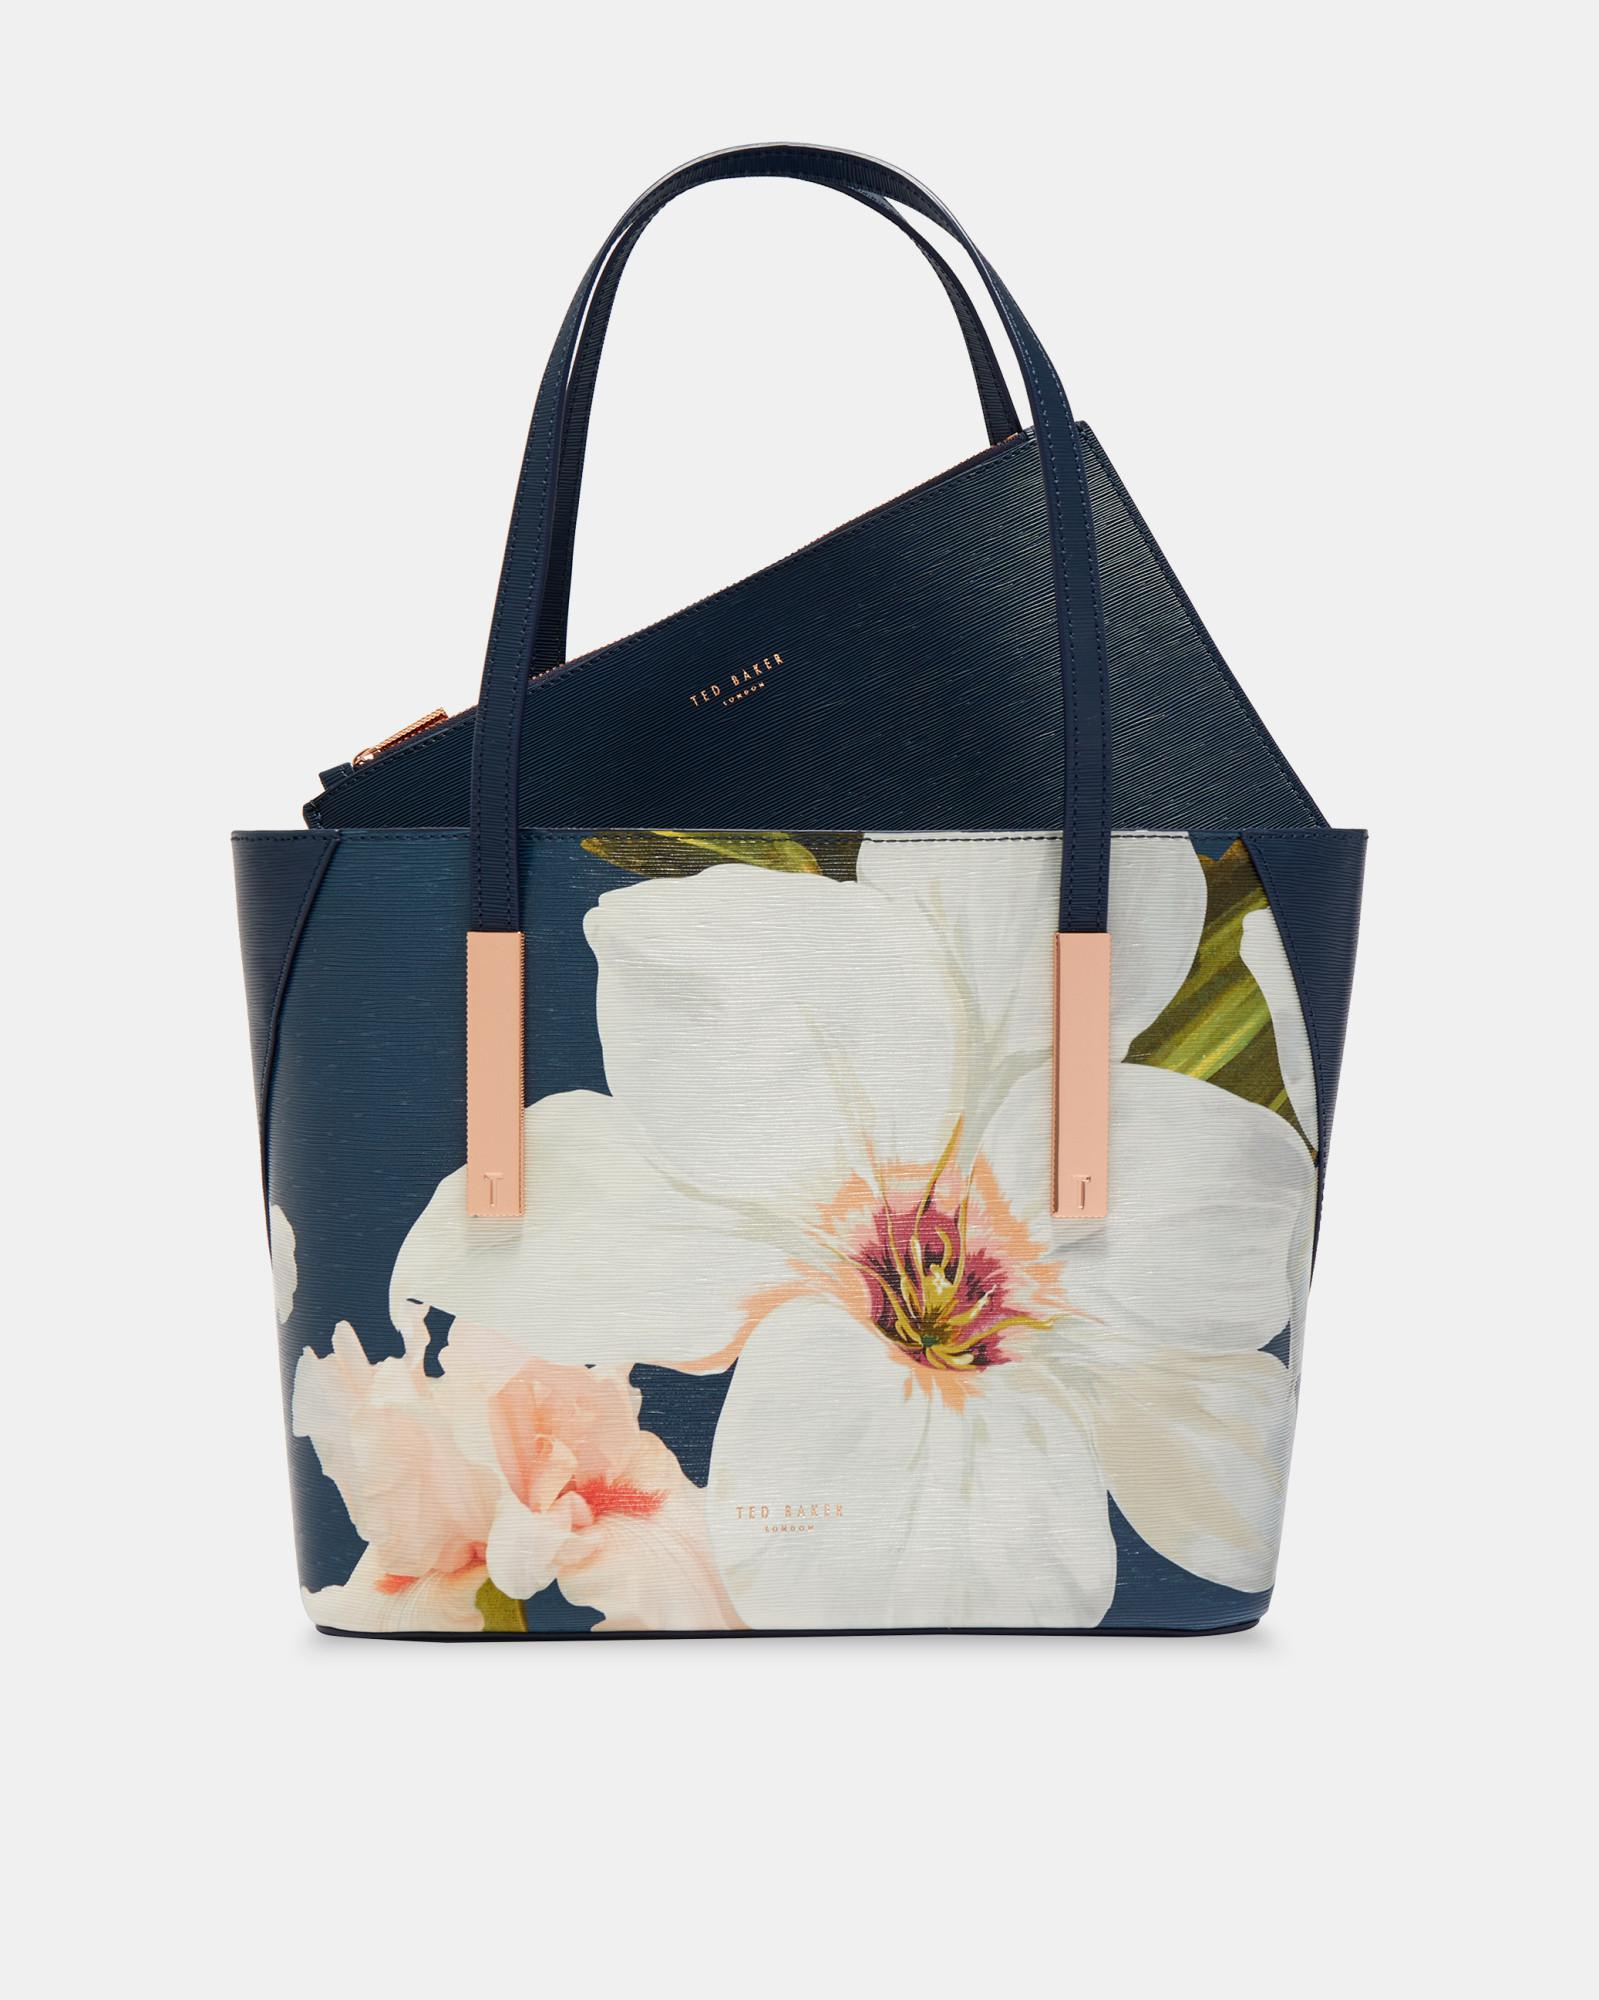 784e0531bf88 Ted Baker Chatsworth Bloom Shopper Bag in Blue - Lyst